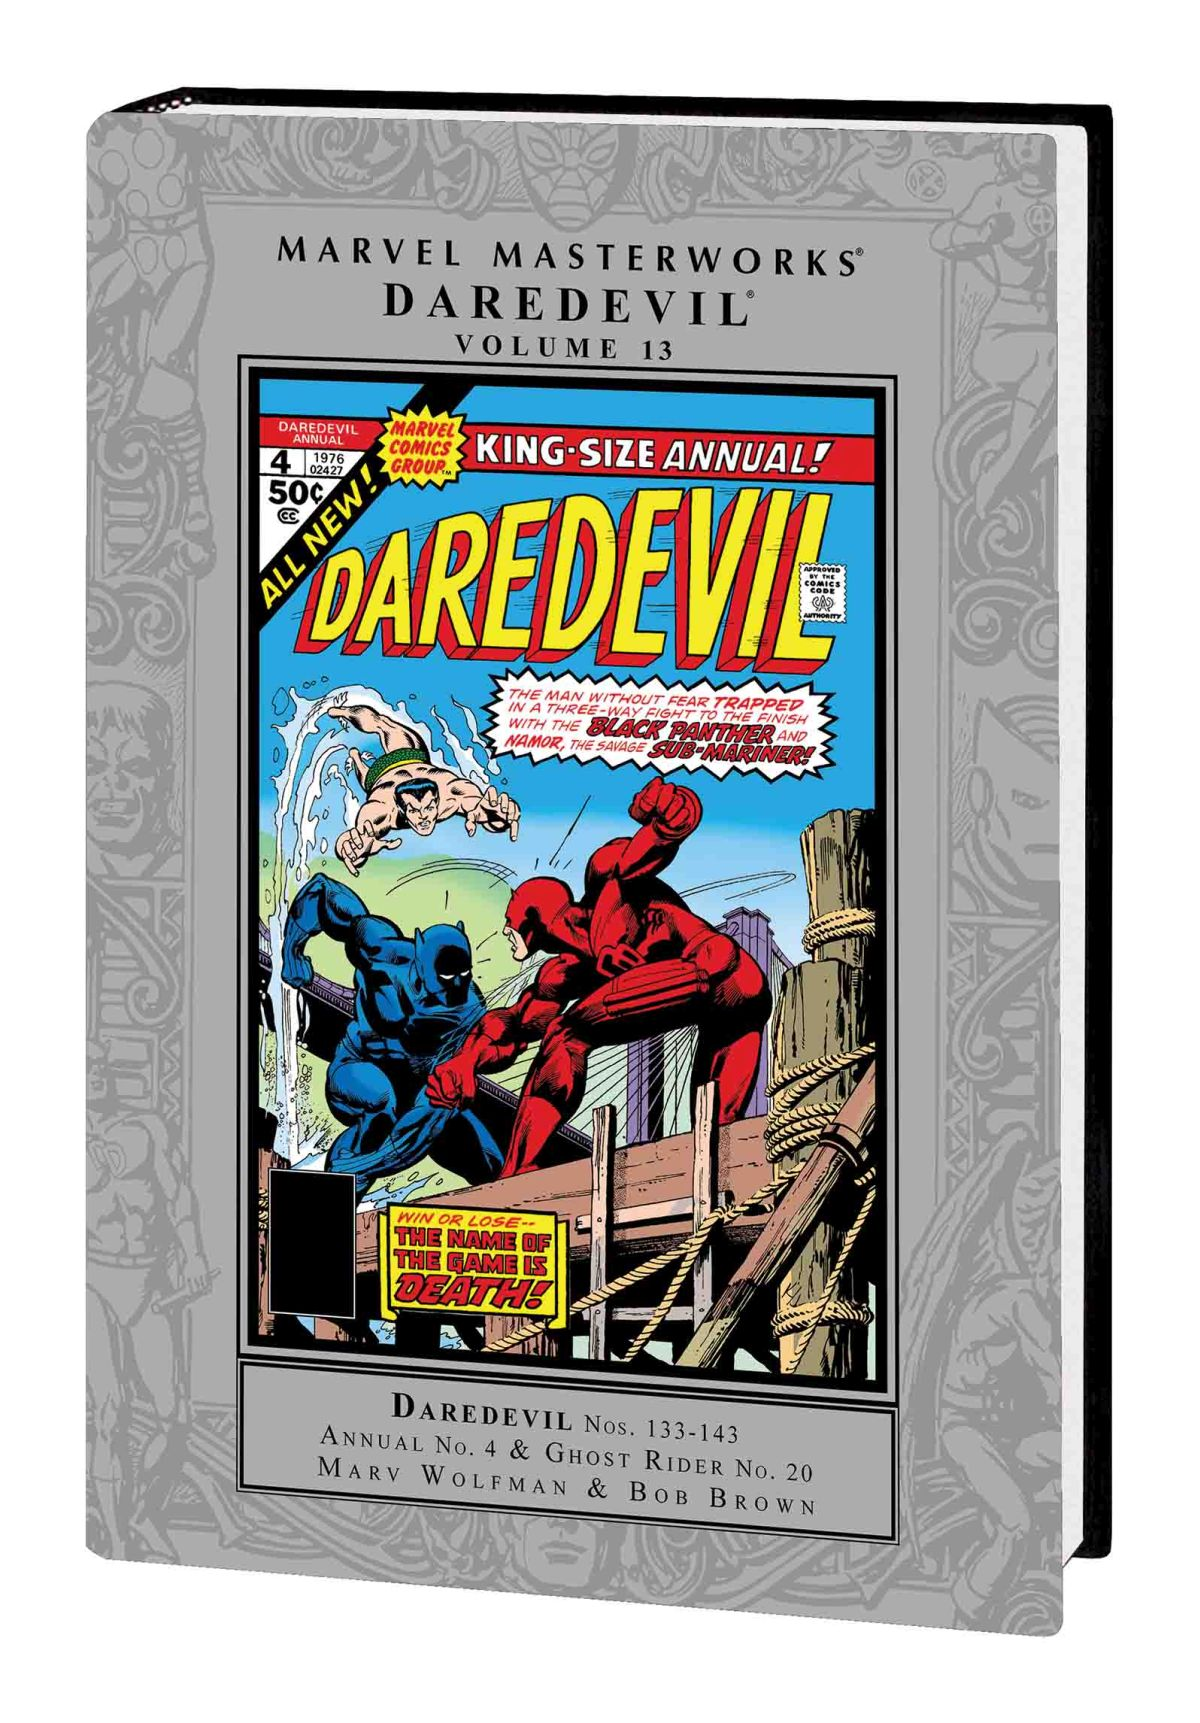 MARVEL MASTERWORKS: DAREDEVIL VOL. 13 HC